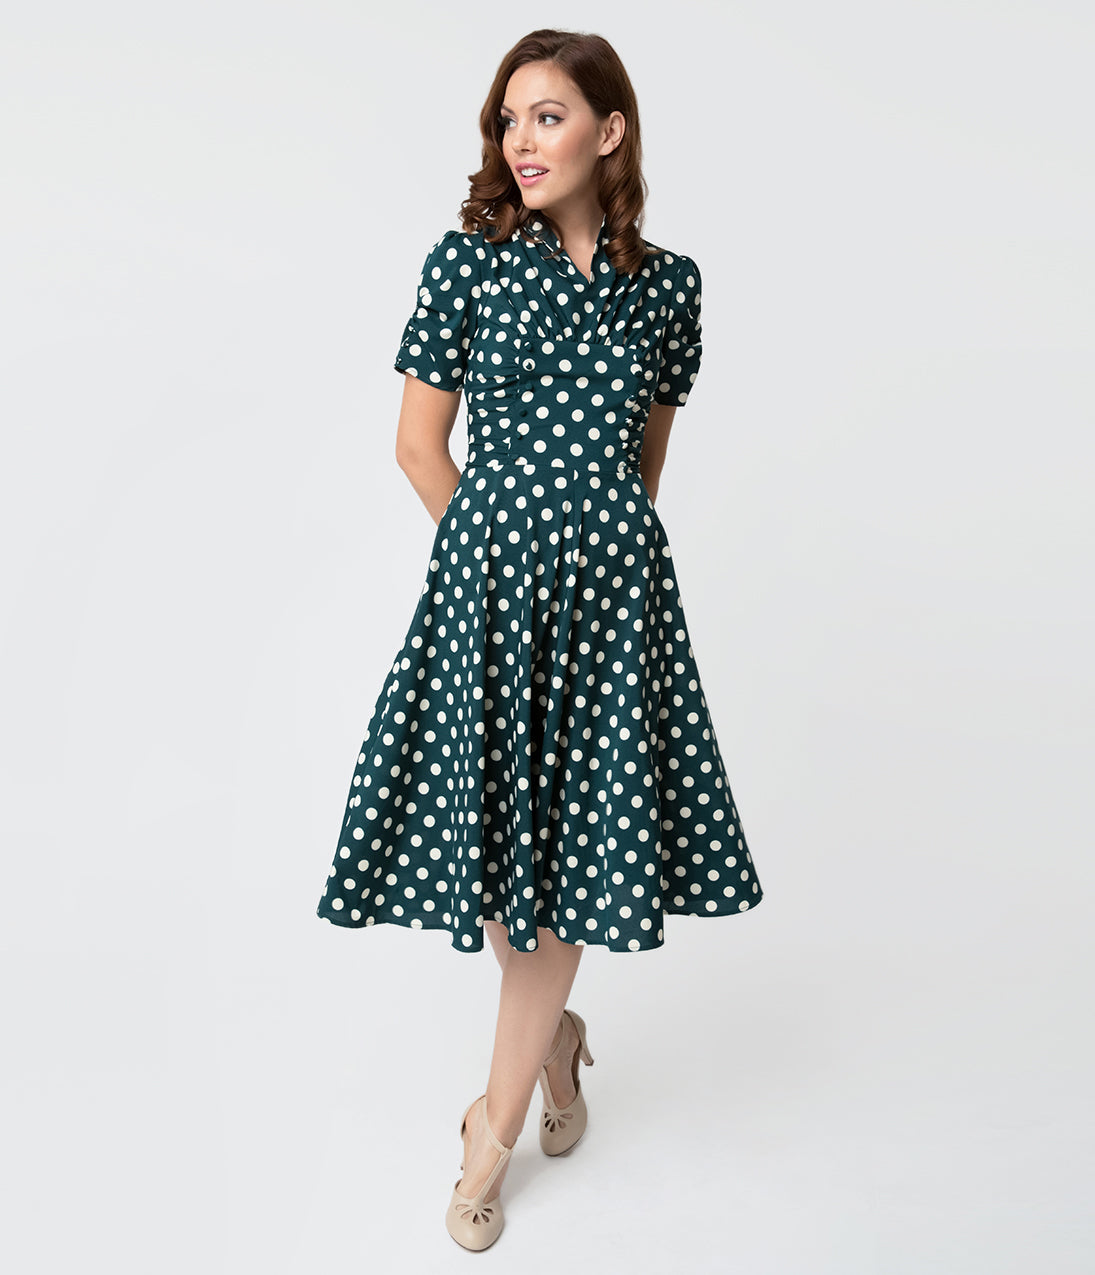 Vintage Tea Dresses, Floral Tea Dresses, Tea Length Dresses Unique Vintage 1940S Style Emerald Green  White Dot Camilla Midi Dress $66.00 AT vintagedancer.com